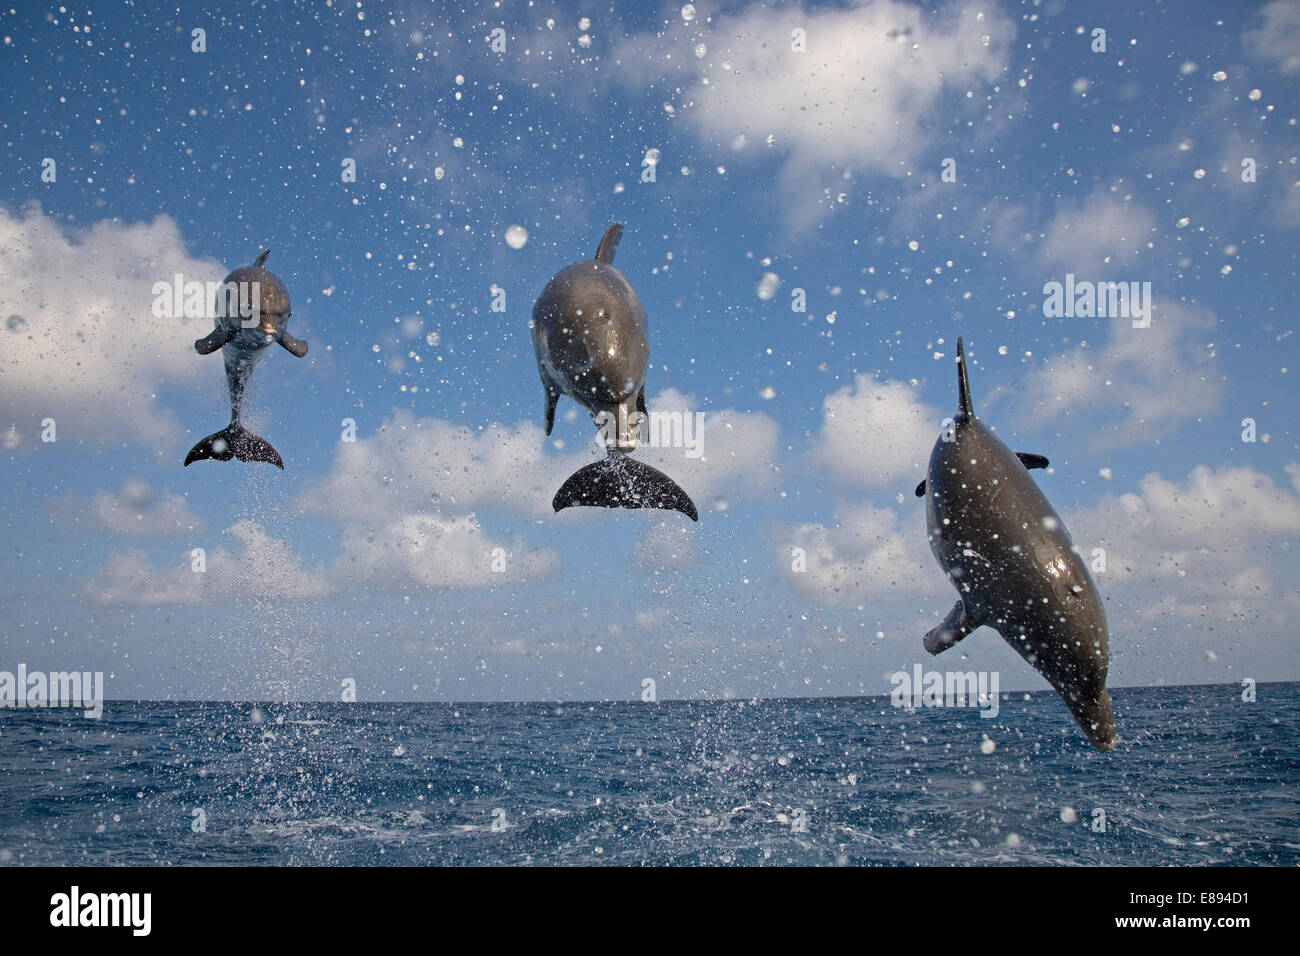 Bottle-nosed Dolphin Tursiops truncatus Length 2.5-4m Bulky, muscular dolphin. Social, found in schools of 3-4 animals. - Stock Image